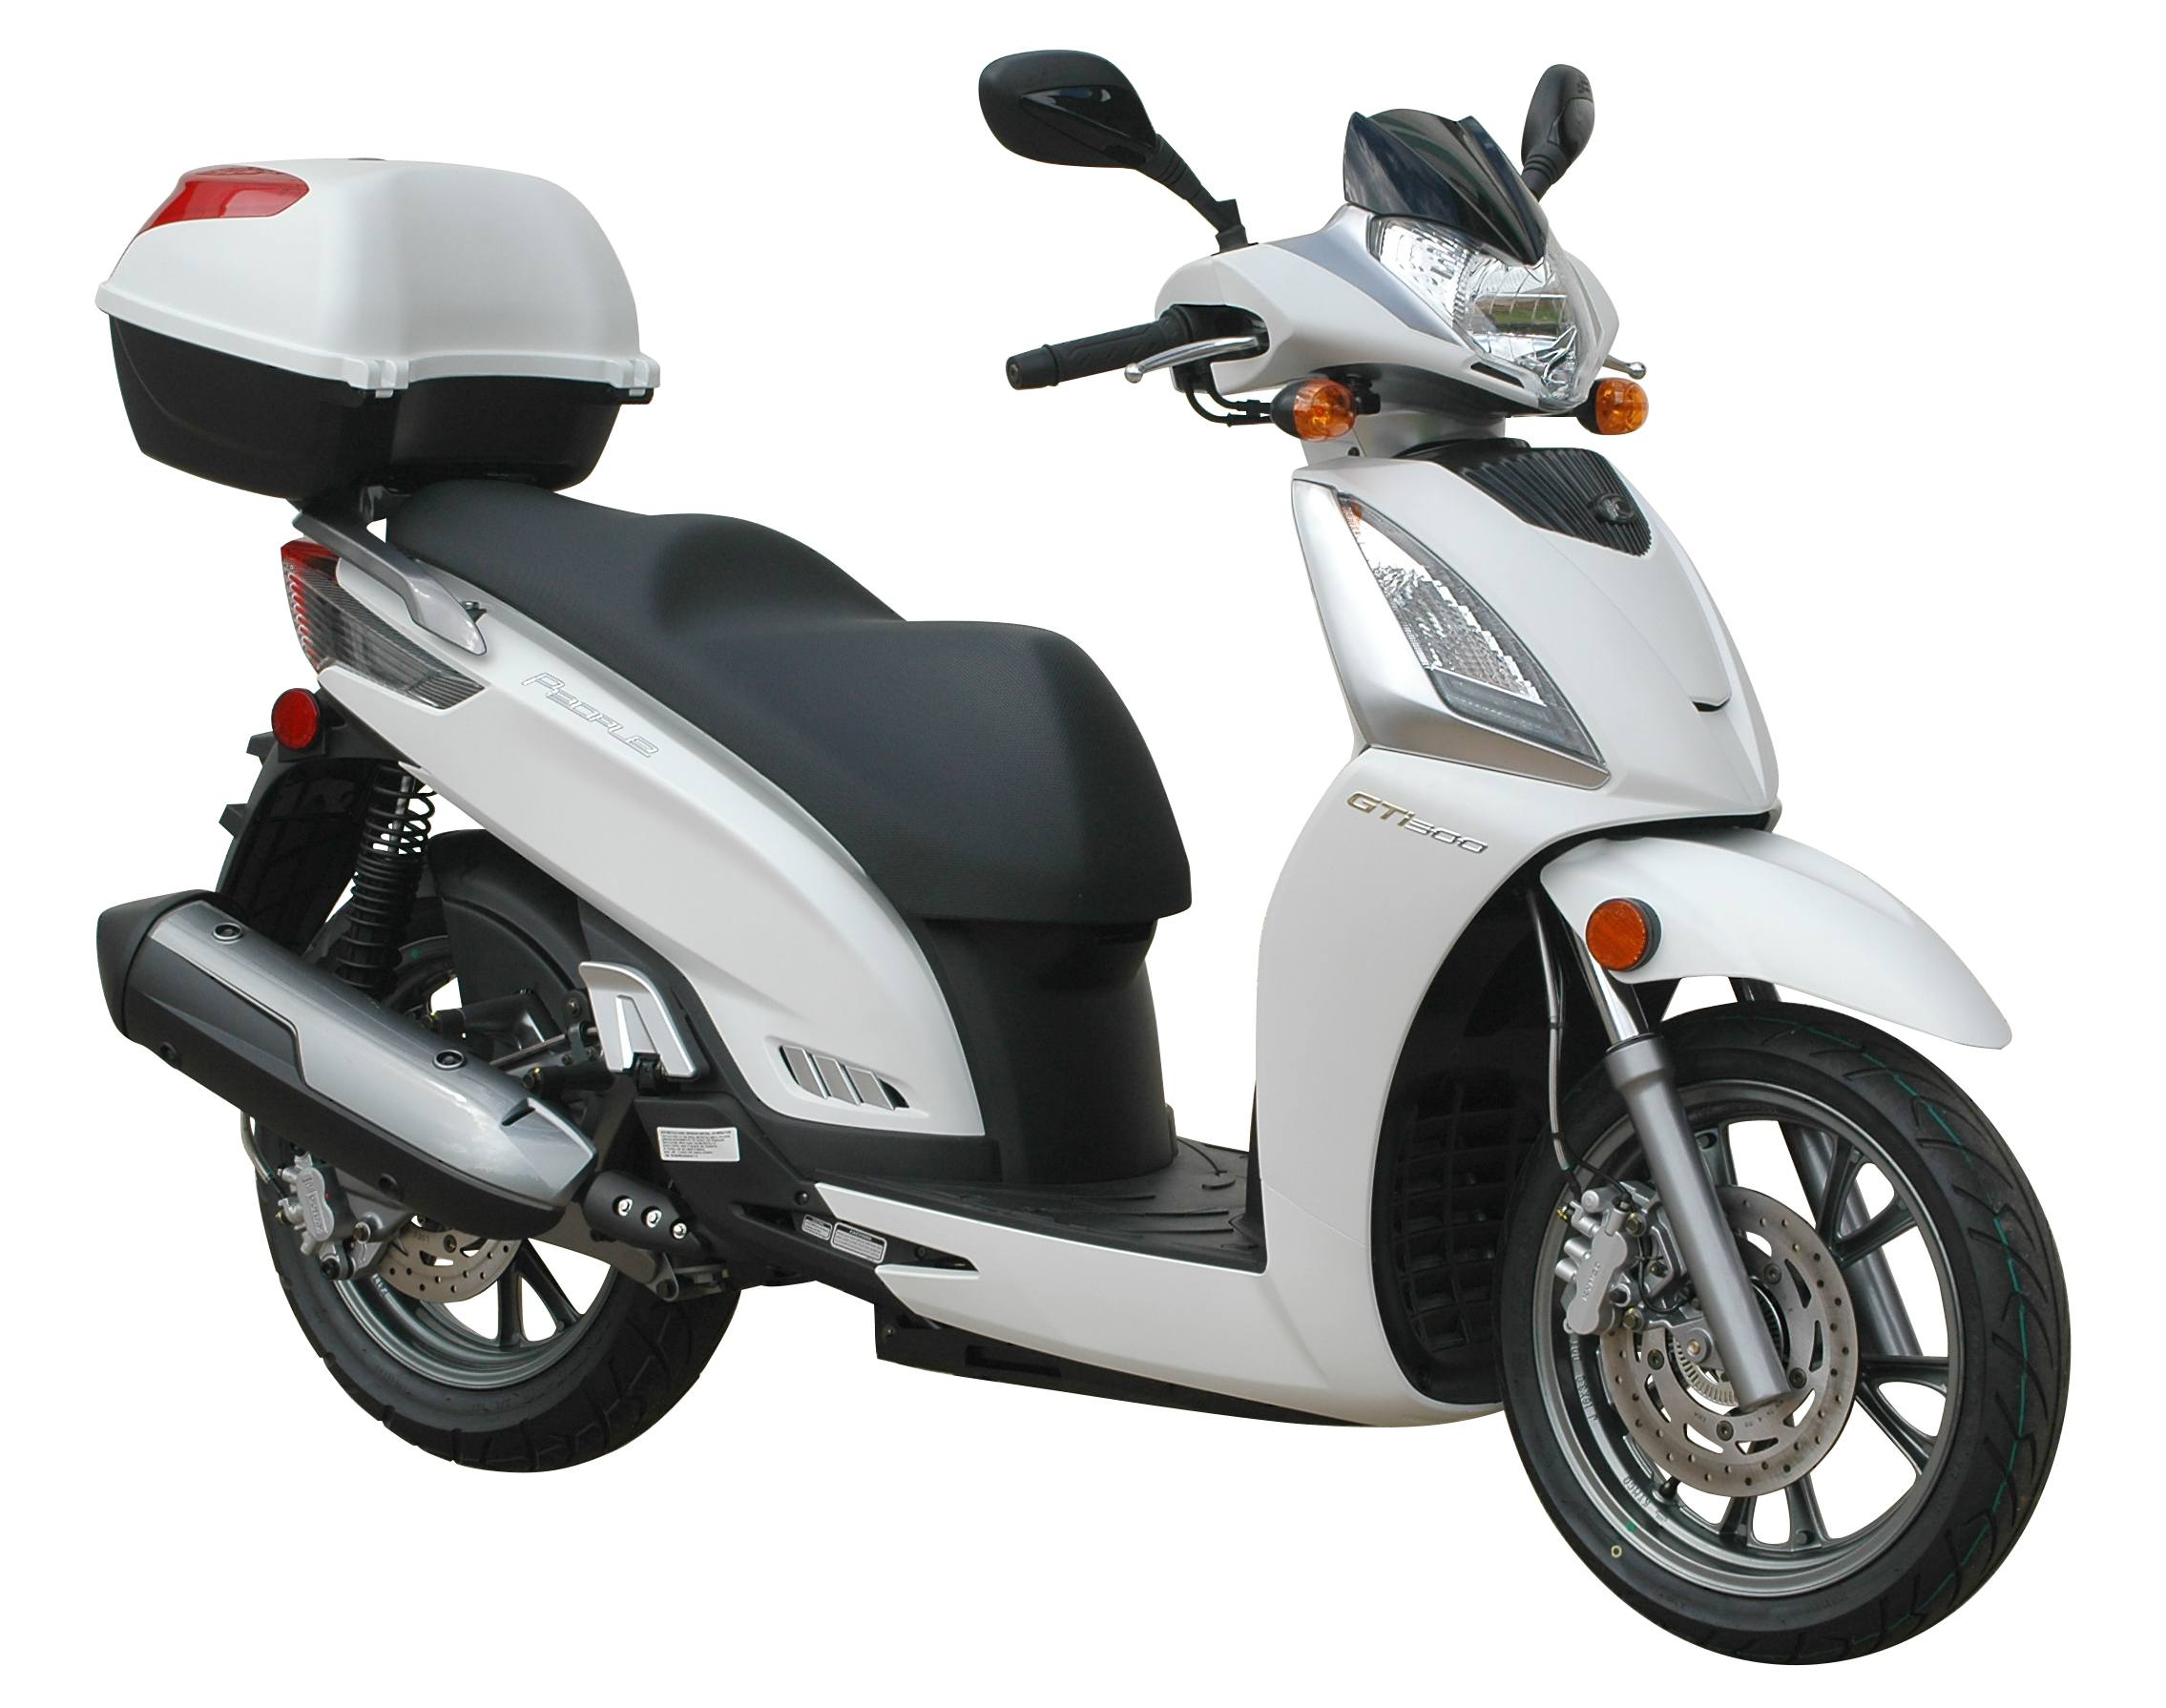 2016 kymco people gt 300i scooters traverse city michigan peoplegt300i. Black Bedroom Furniture Sets. Home Design Ideas